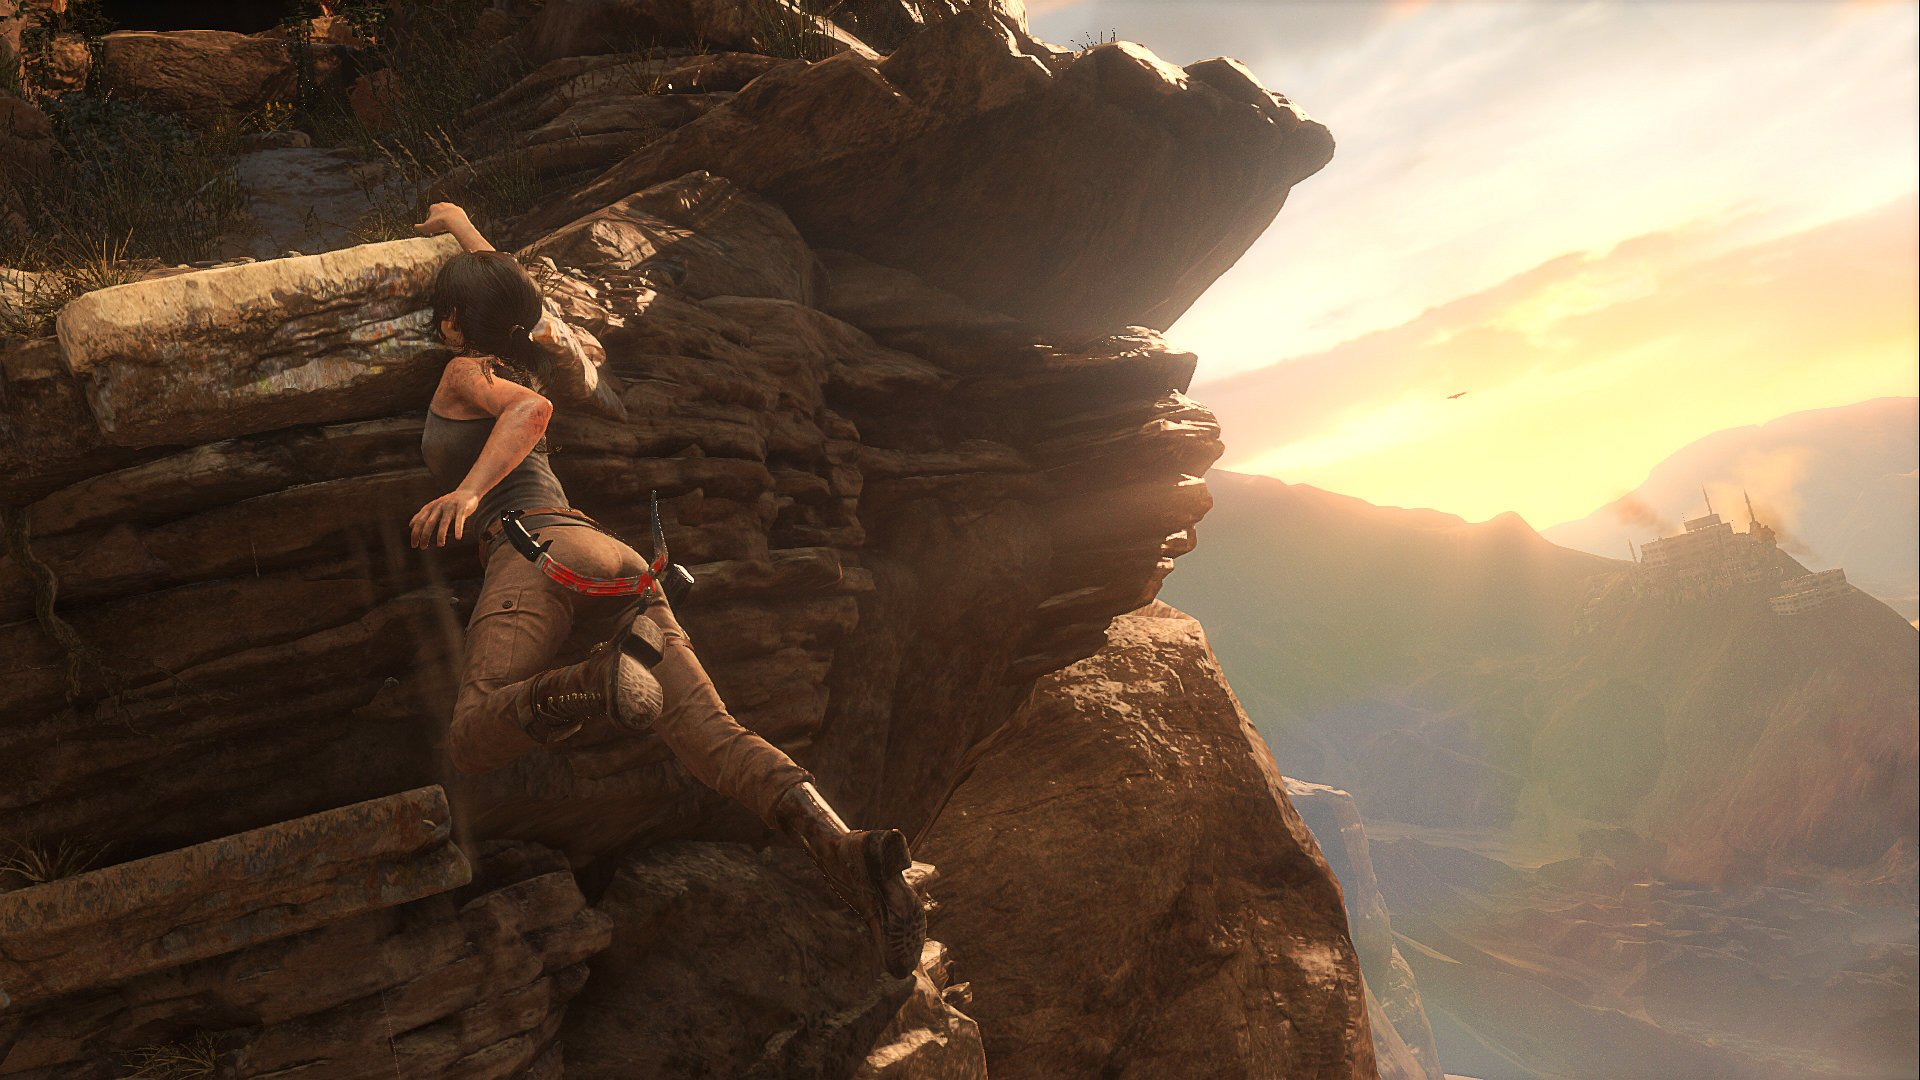 rise_of_the_tomb_raider screens